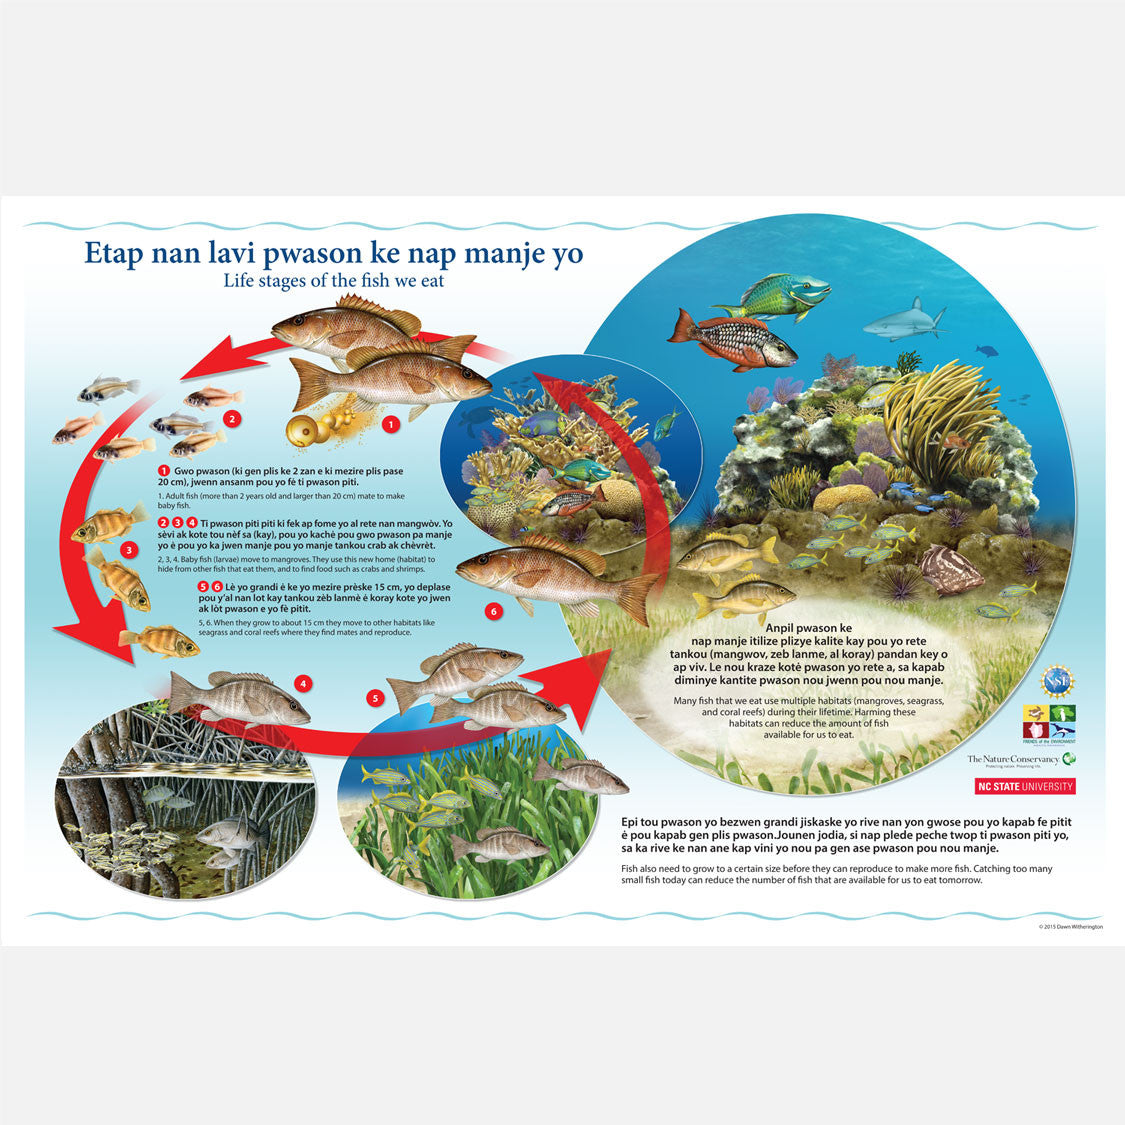 This beautiful poster provides information explaining the importance of fish habitats for Haitian fishermen.